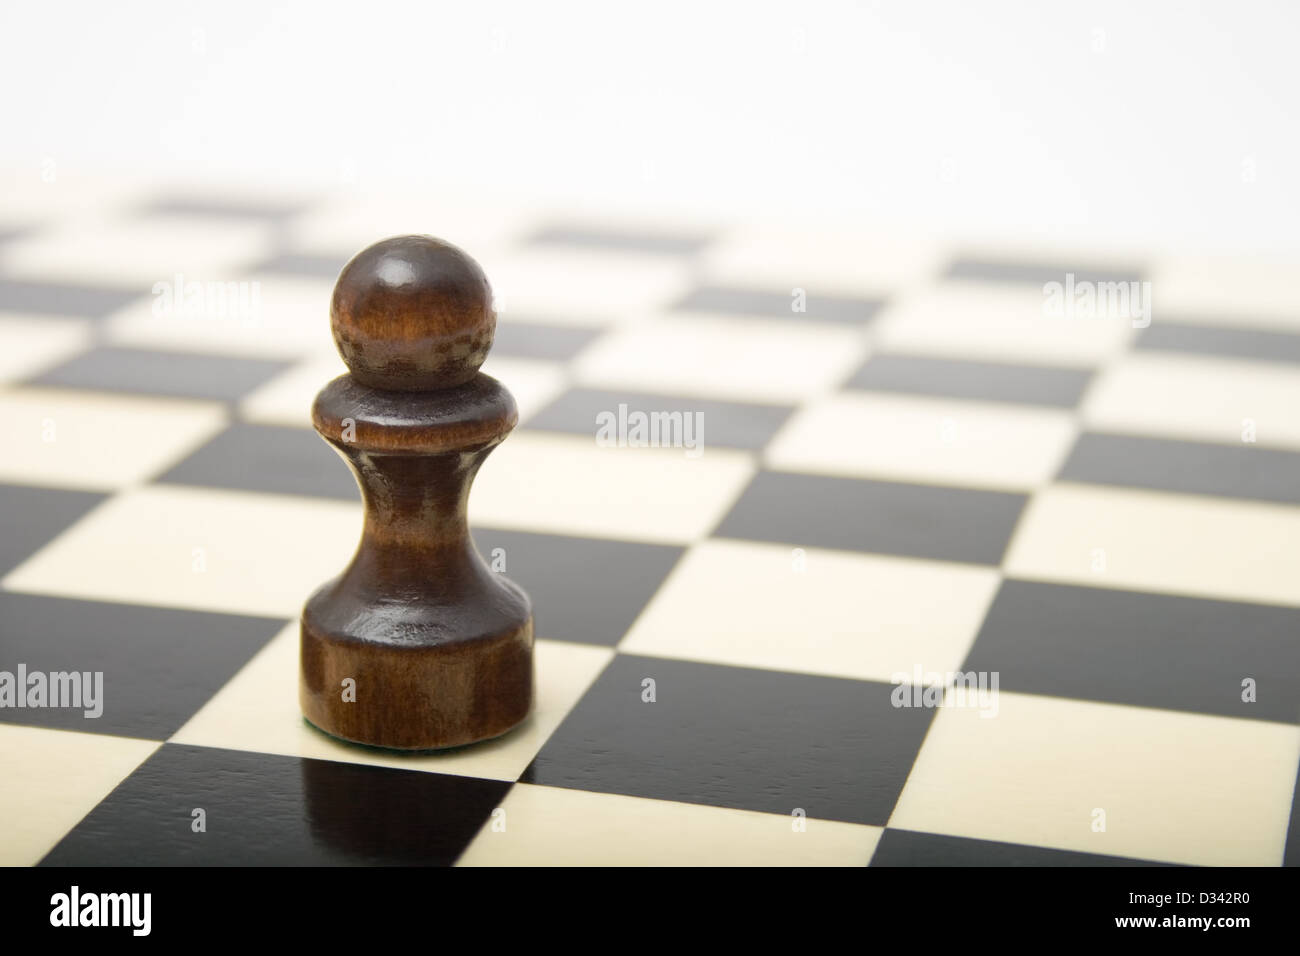 Black Pawn on a chess board - Stock Image